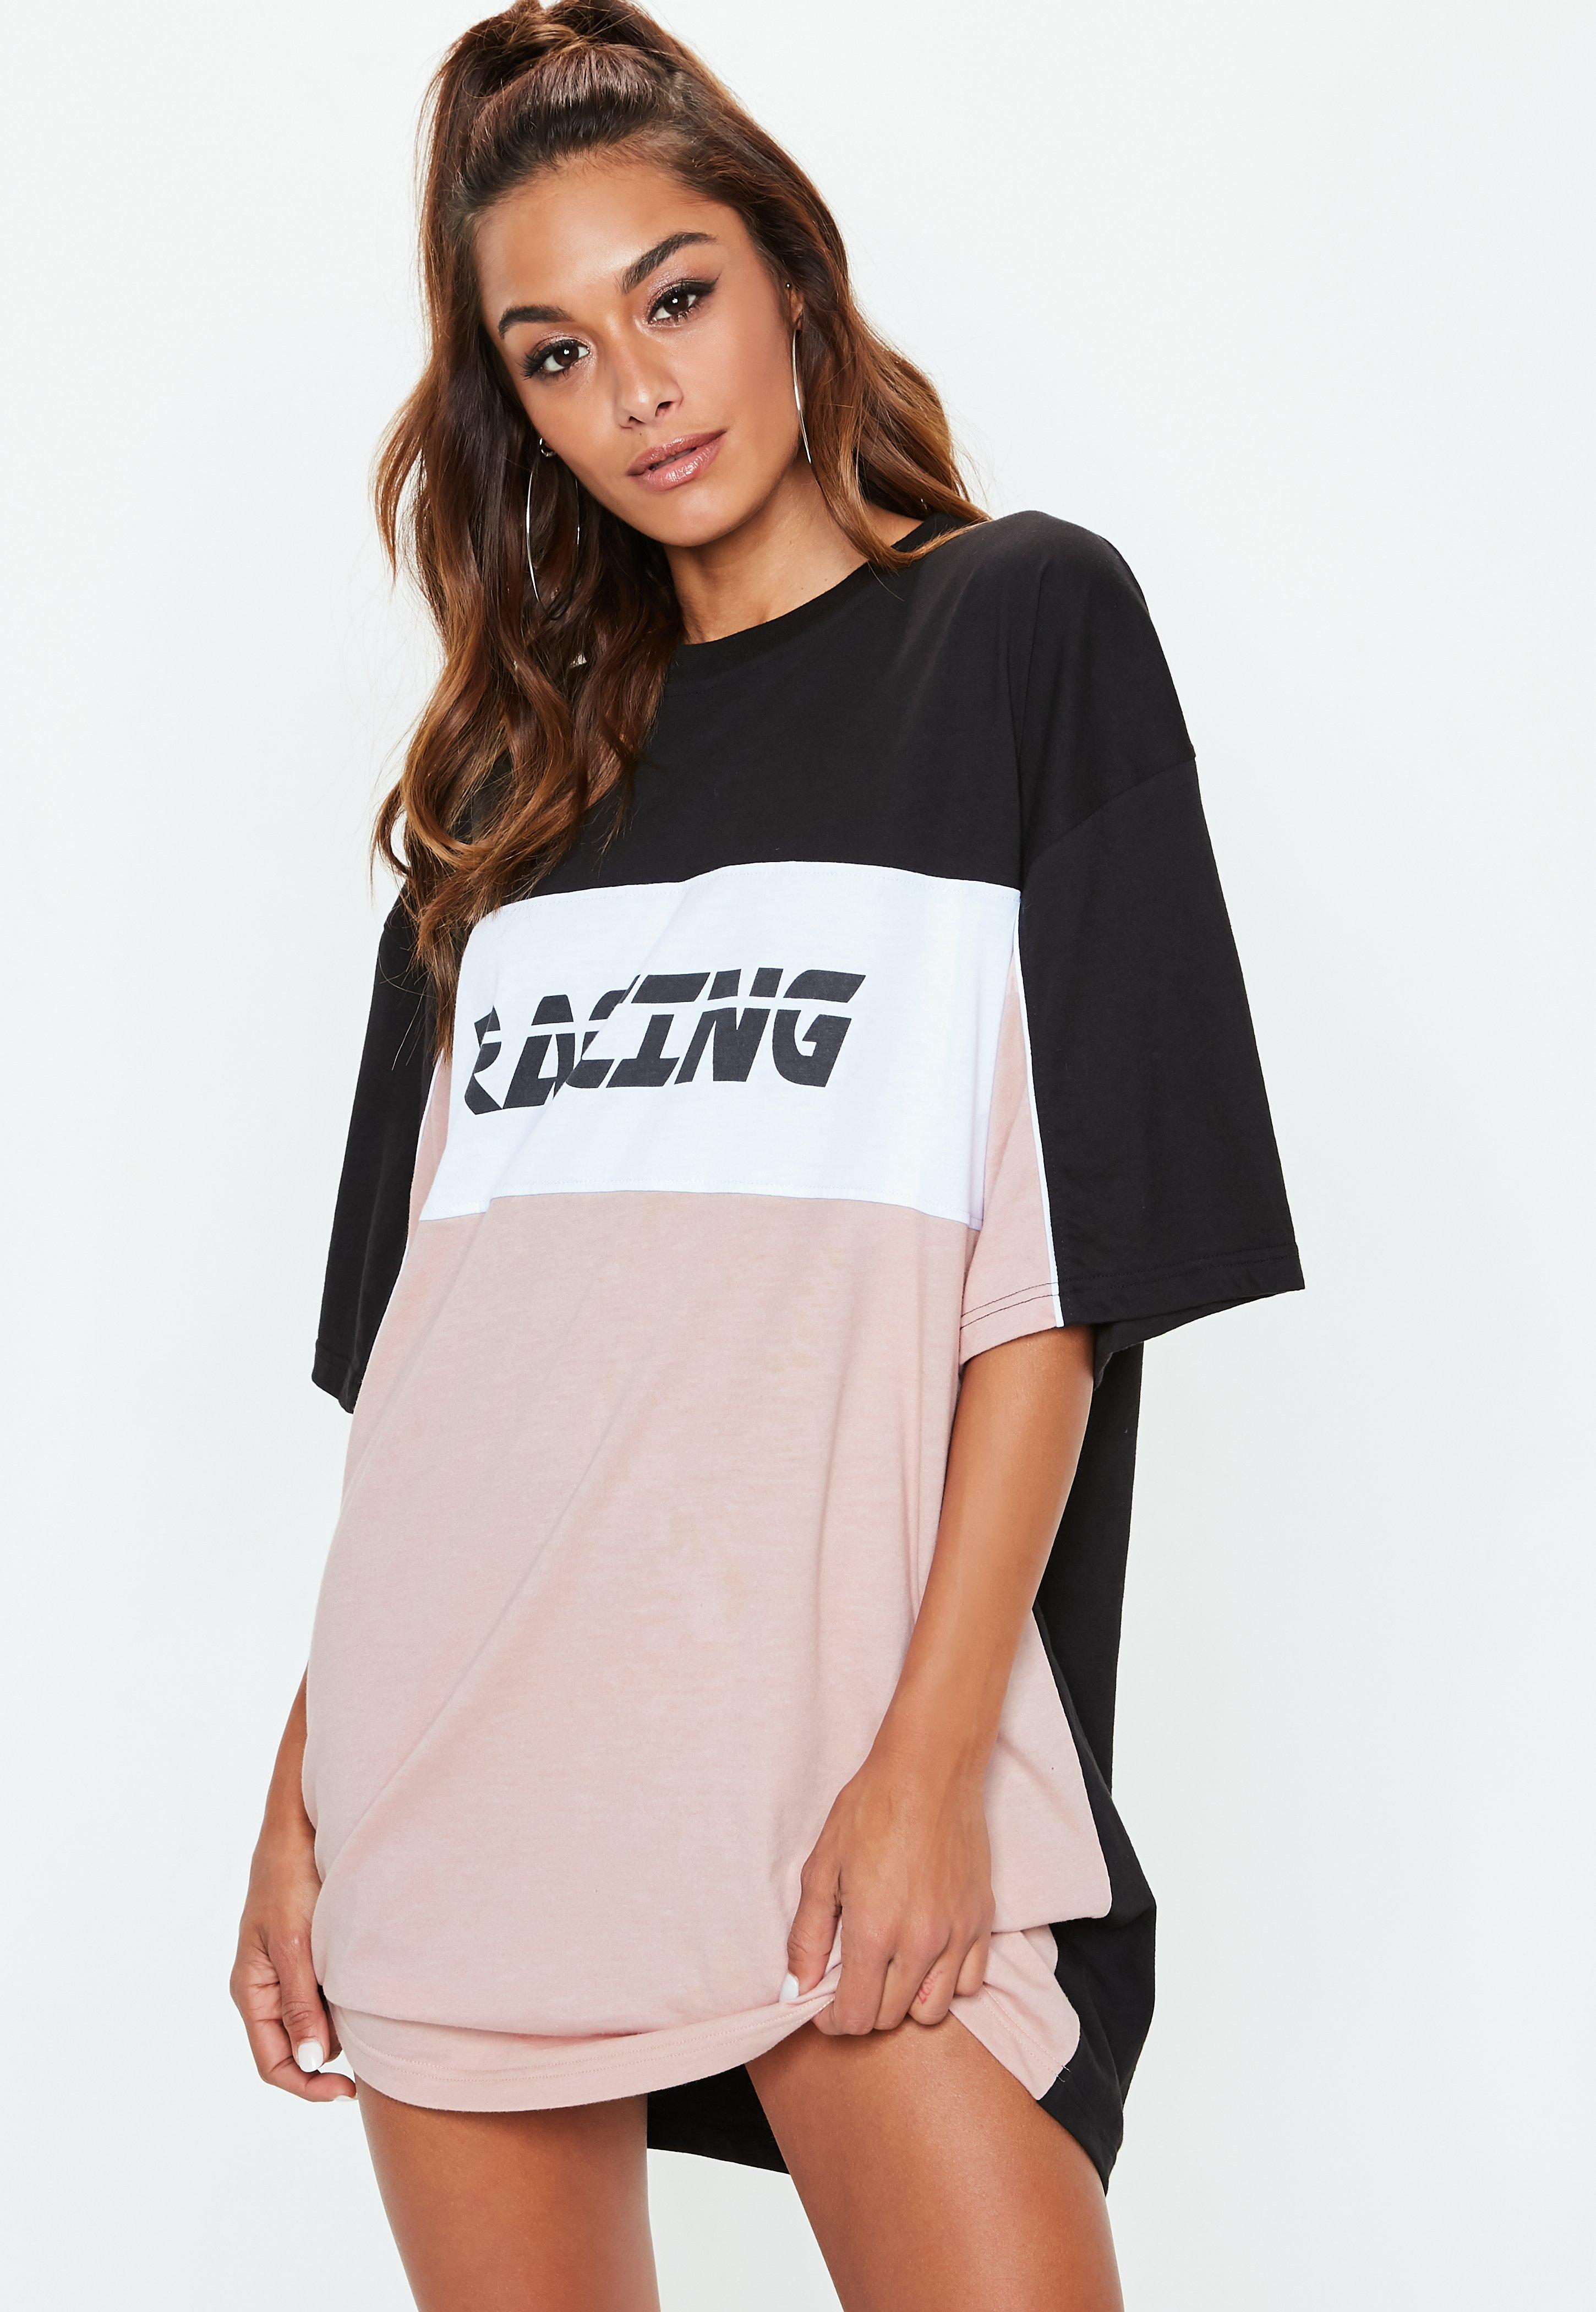 d9aba776e8 Lyst - Missguided Black Racing Slogan Oversized T Shirt Dress in Black